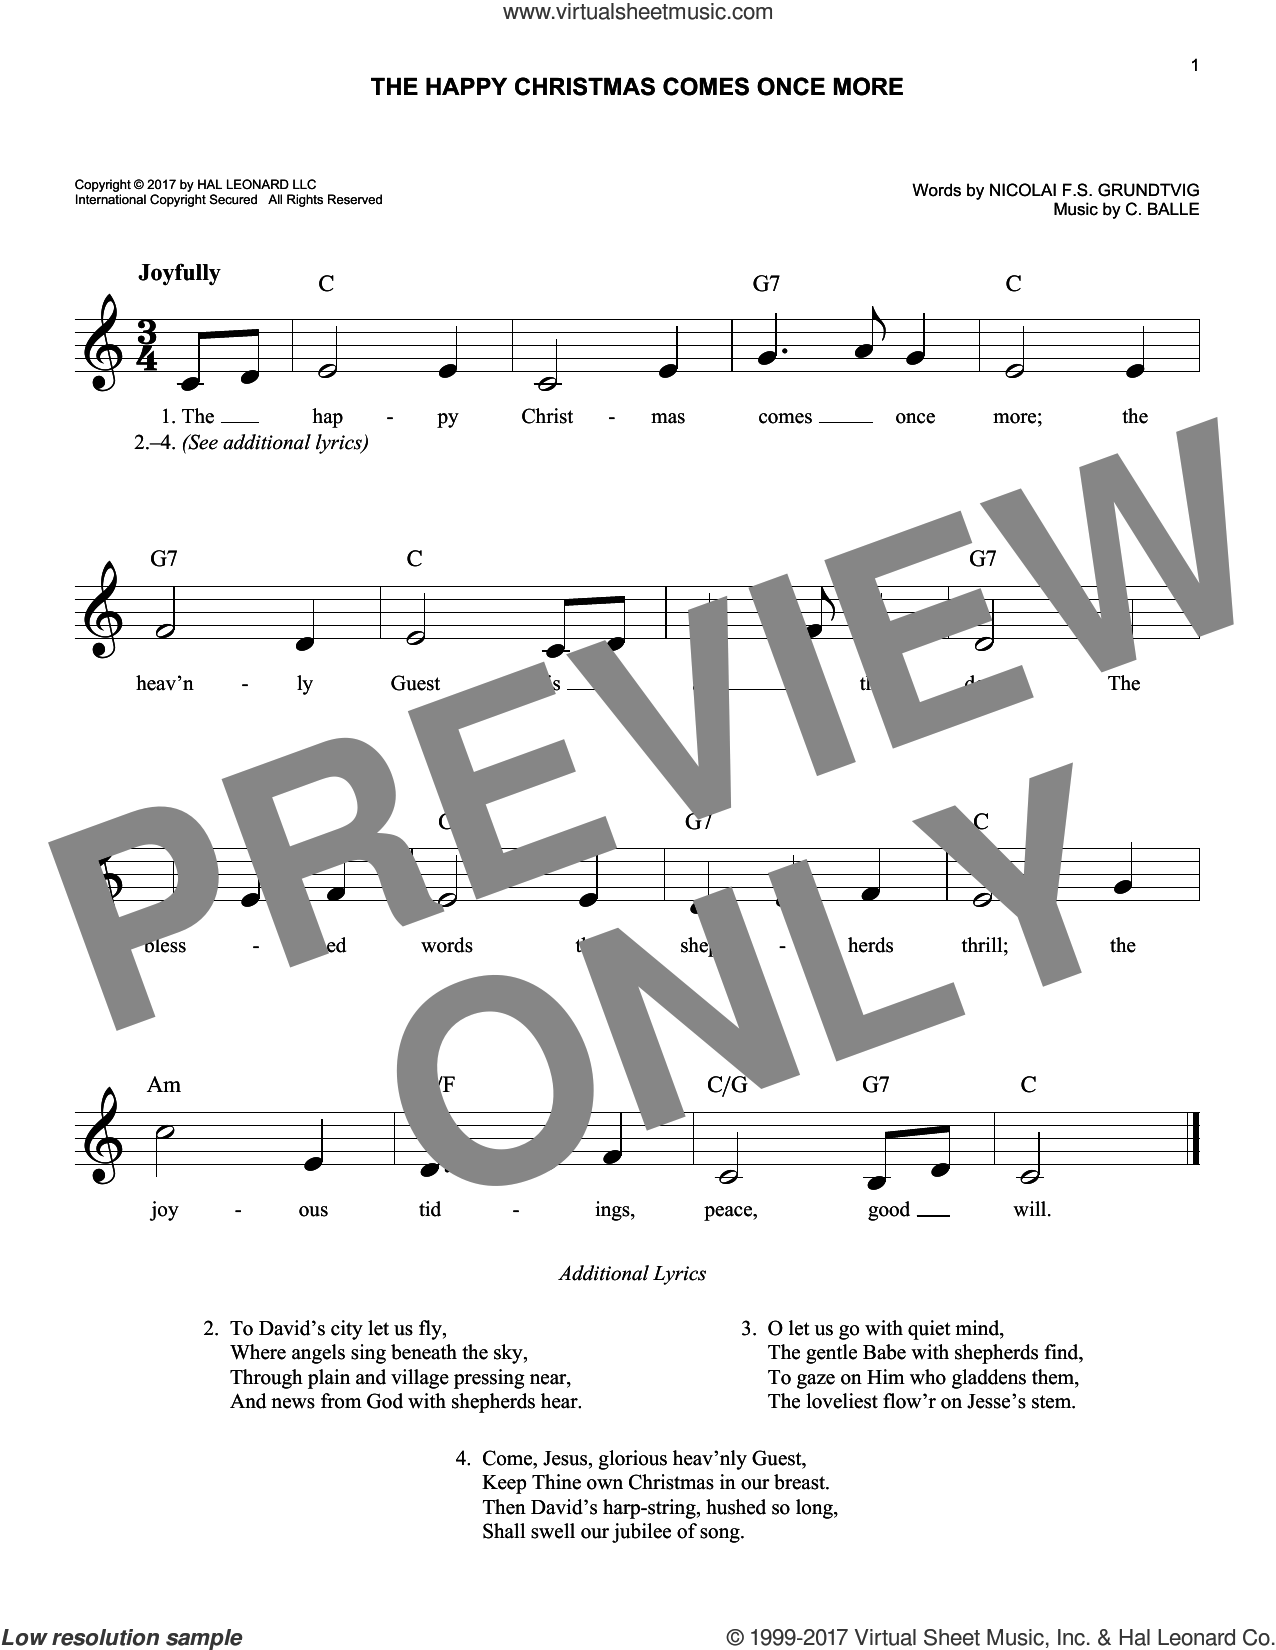 The Happy Christmas Comes Once More sheet music for voice and other instruments (fake book) by Nicolai F.S. Grundtvig and C. Balle, intermediate skill level